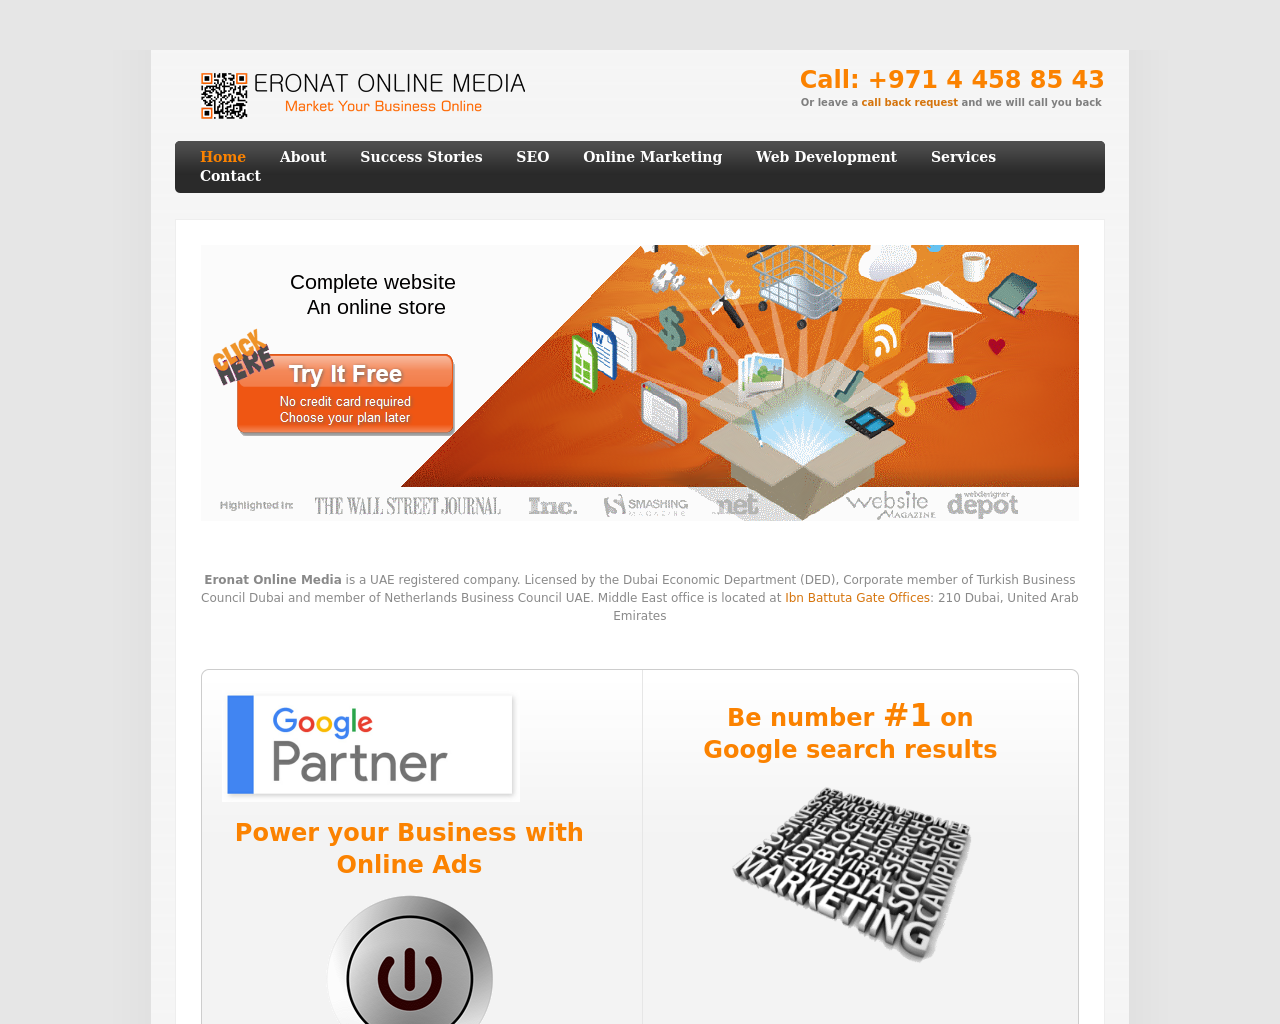 Eronat-Online-Media-Advertising-Reviews-Pricing